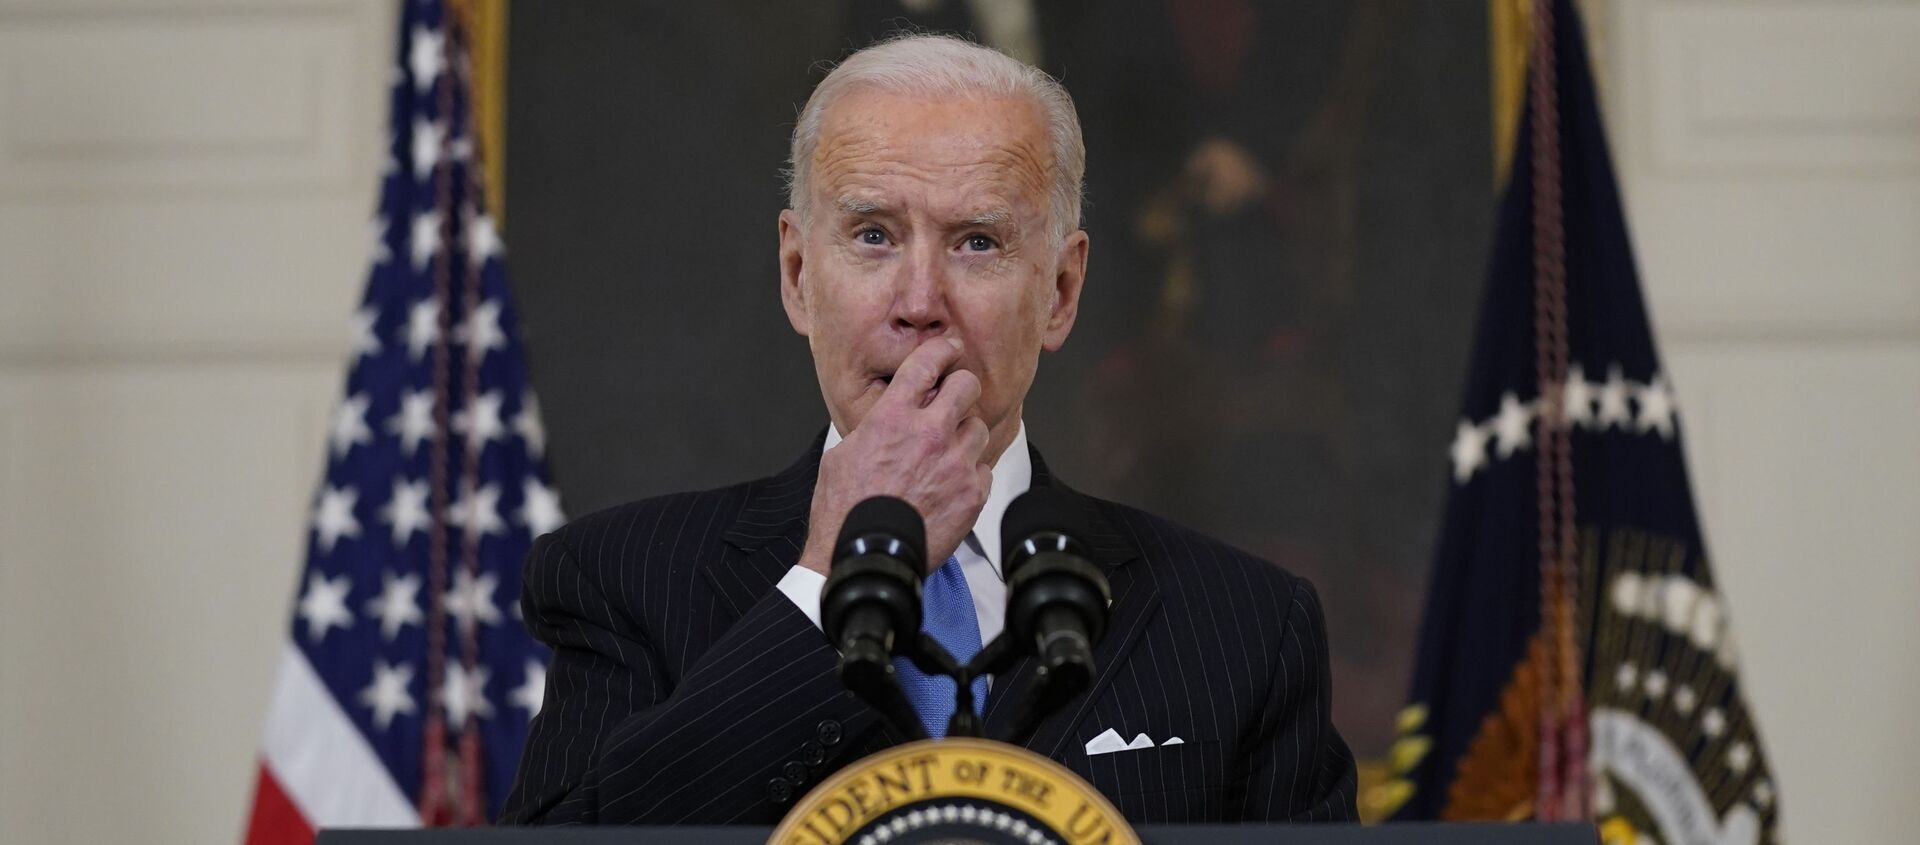 President Joe Biden speaks about efforts to combat COVID-19, in the State Dining Room of the White House, Tuesday, March 2, 2021, in Washington - Sputnik International, 1920, 06.03.2021